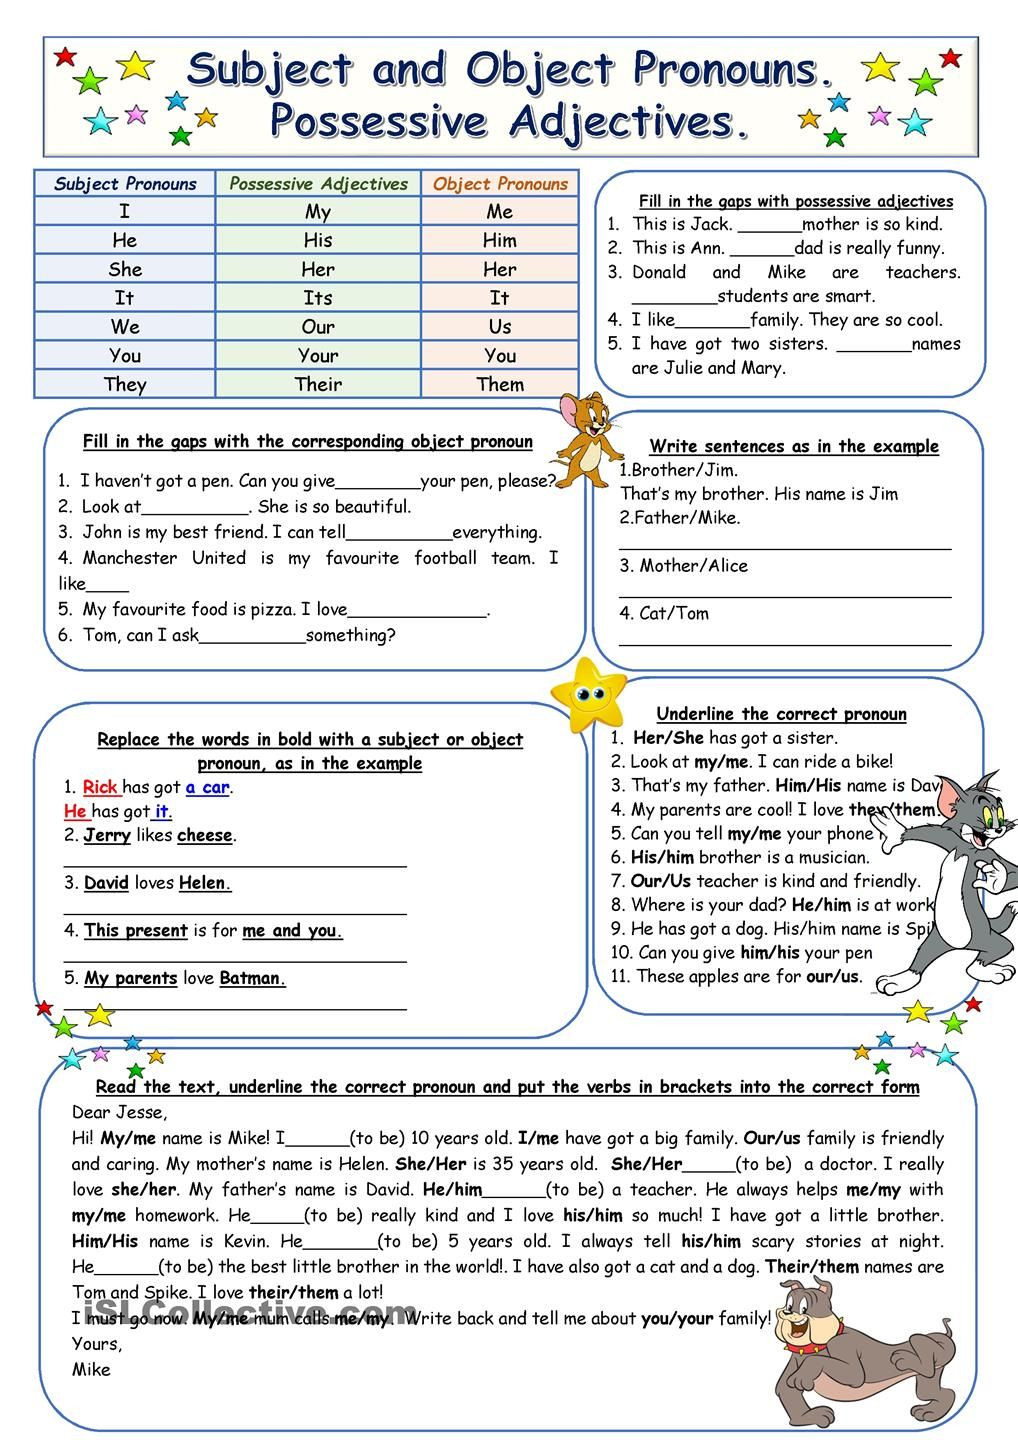 Possessive Pronoun Worksheet 3rd Grade Subject and Object Pronouns Possessive Adjectives